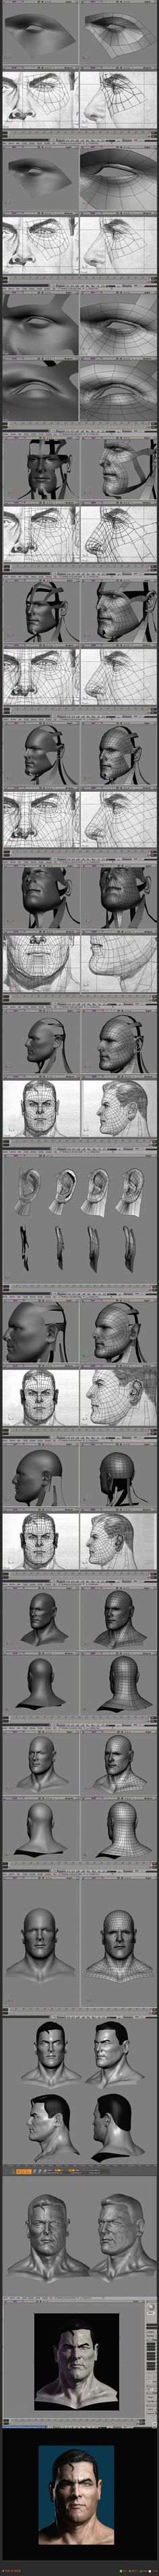 Picked up by CGchips. 2D,3DCG tutorials and 3Dprinter news site. http://cgchips.com/: